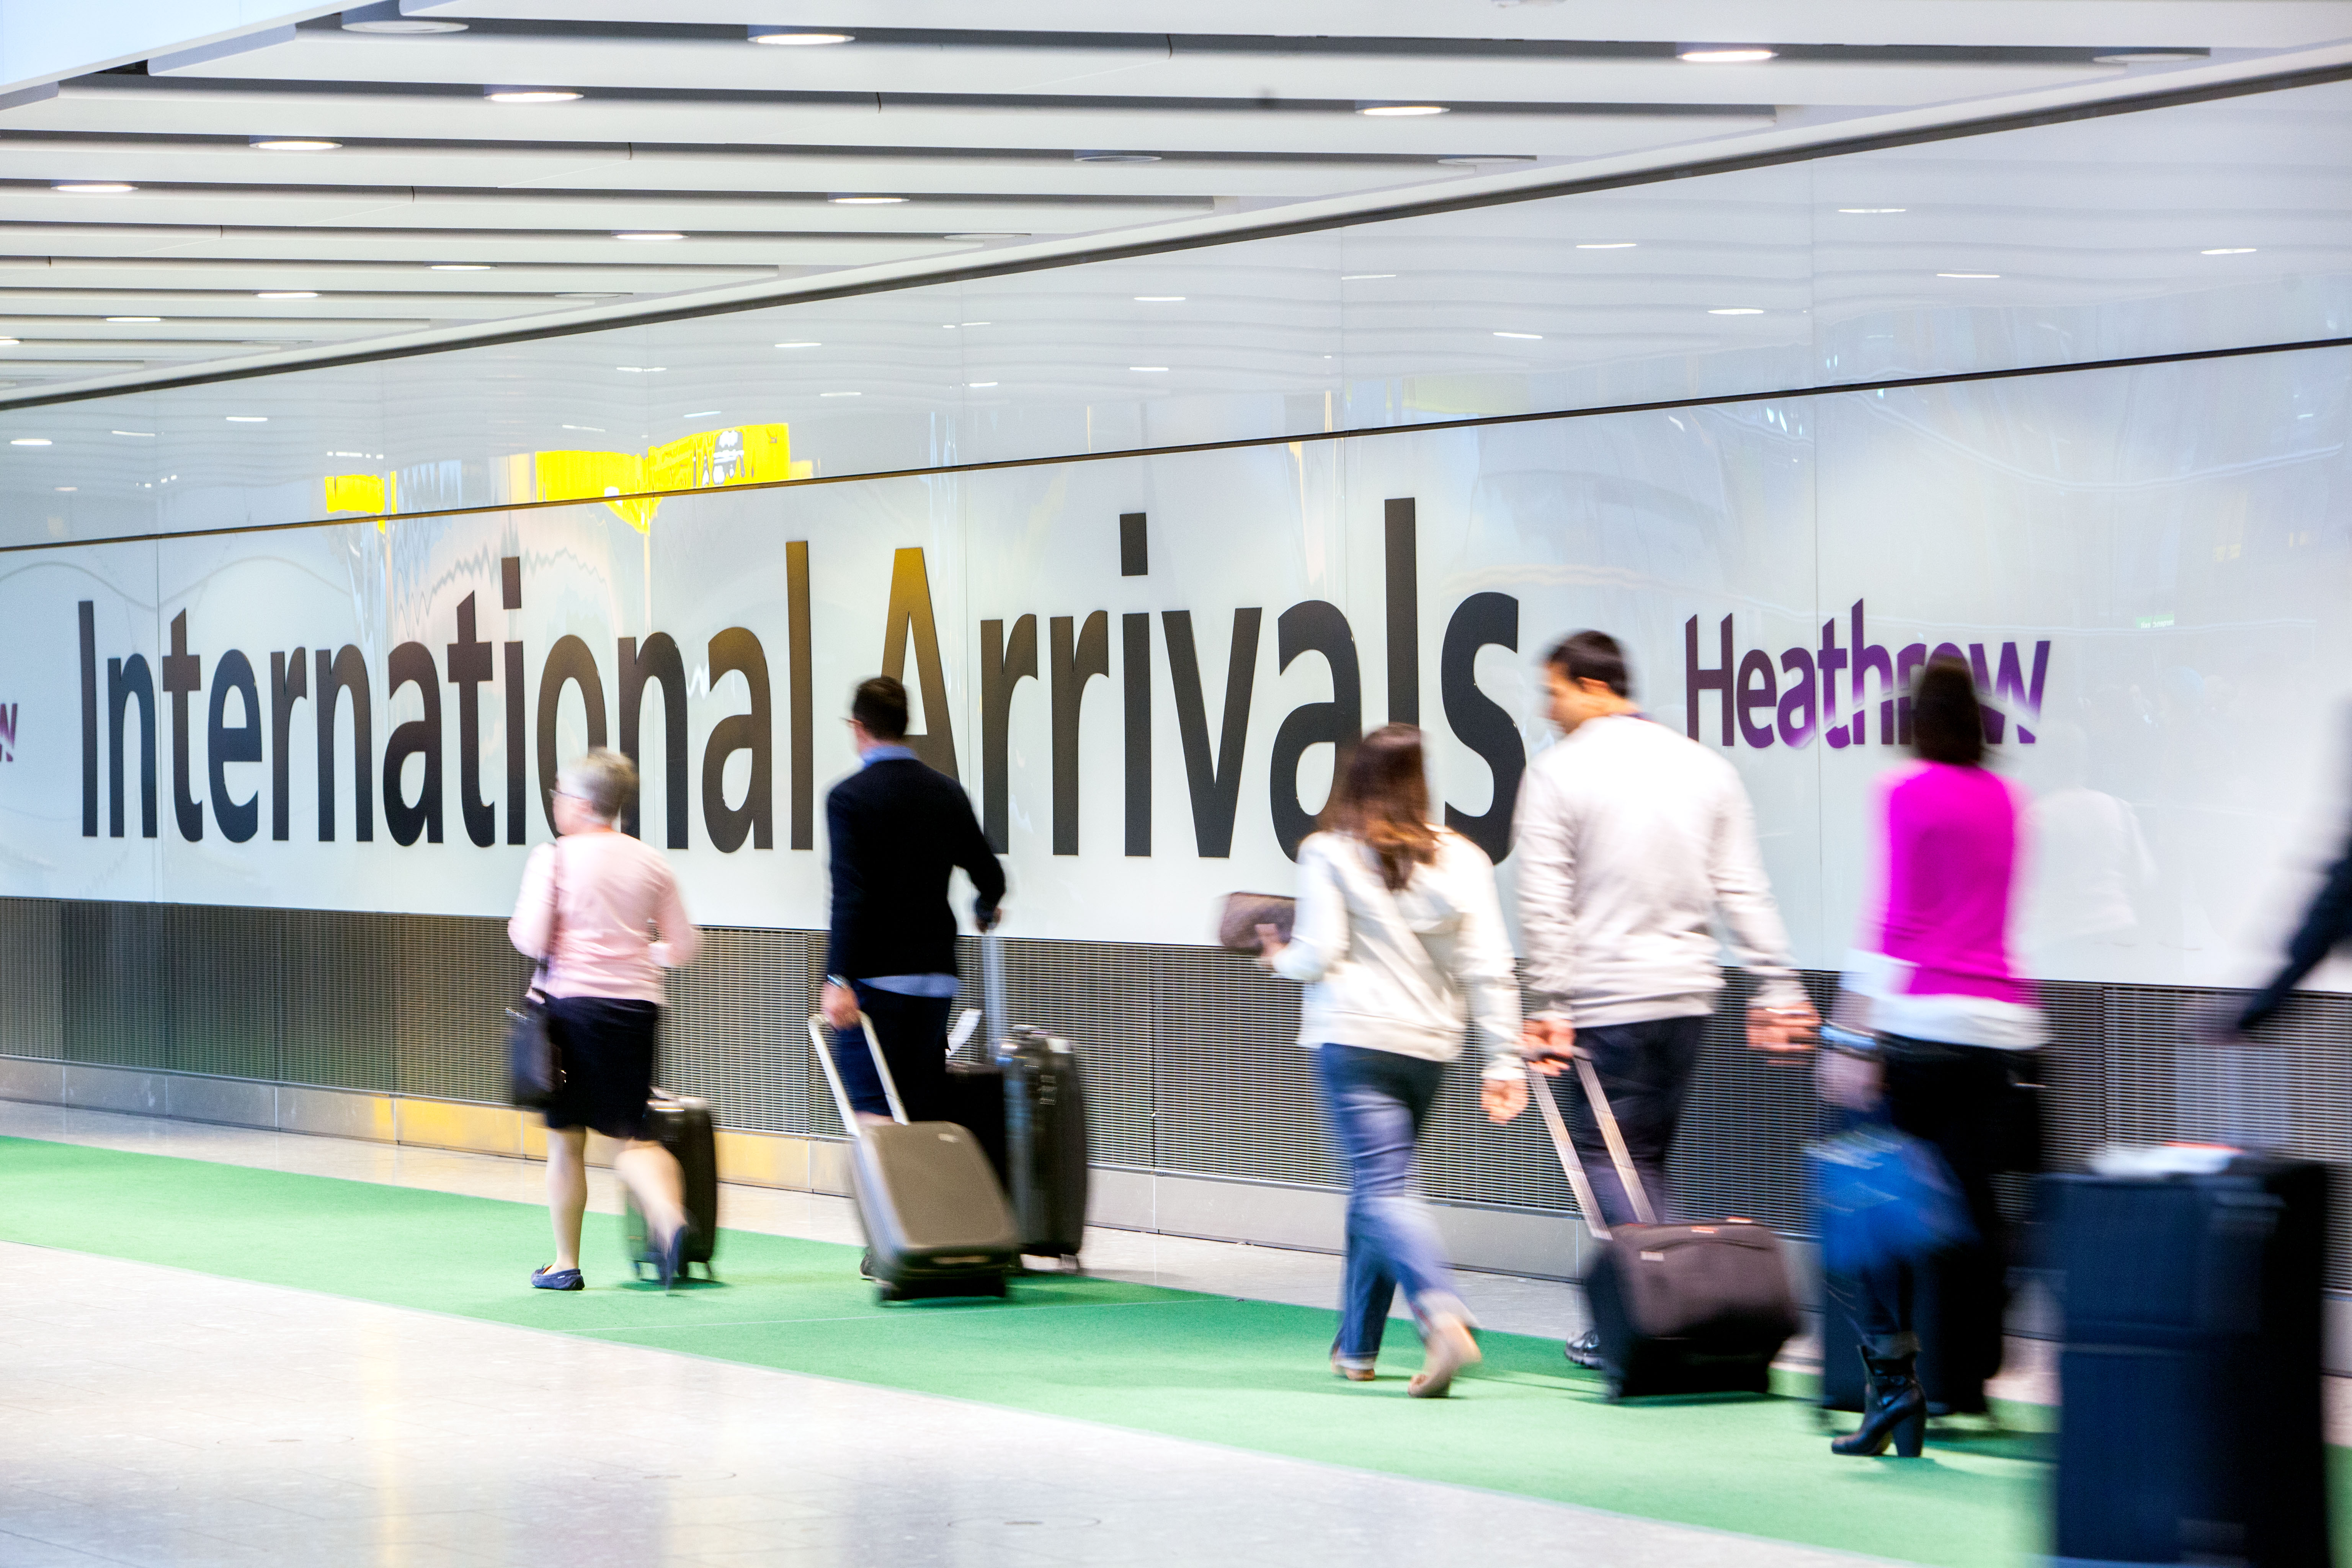 Major retail review planned at heathrow airport heathrow airport terminal 5a main terminal building arrivals concourse may 2013 m4hsunfo